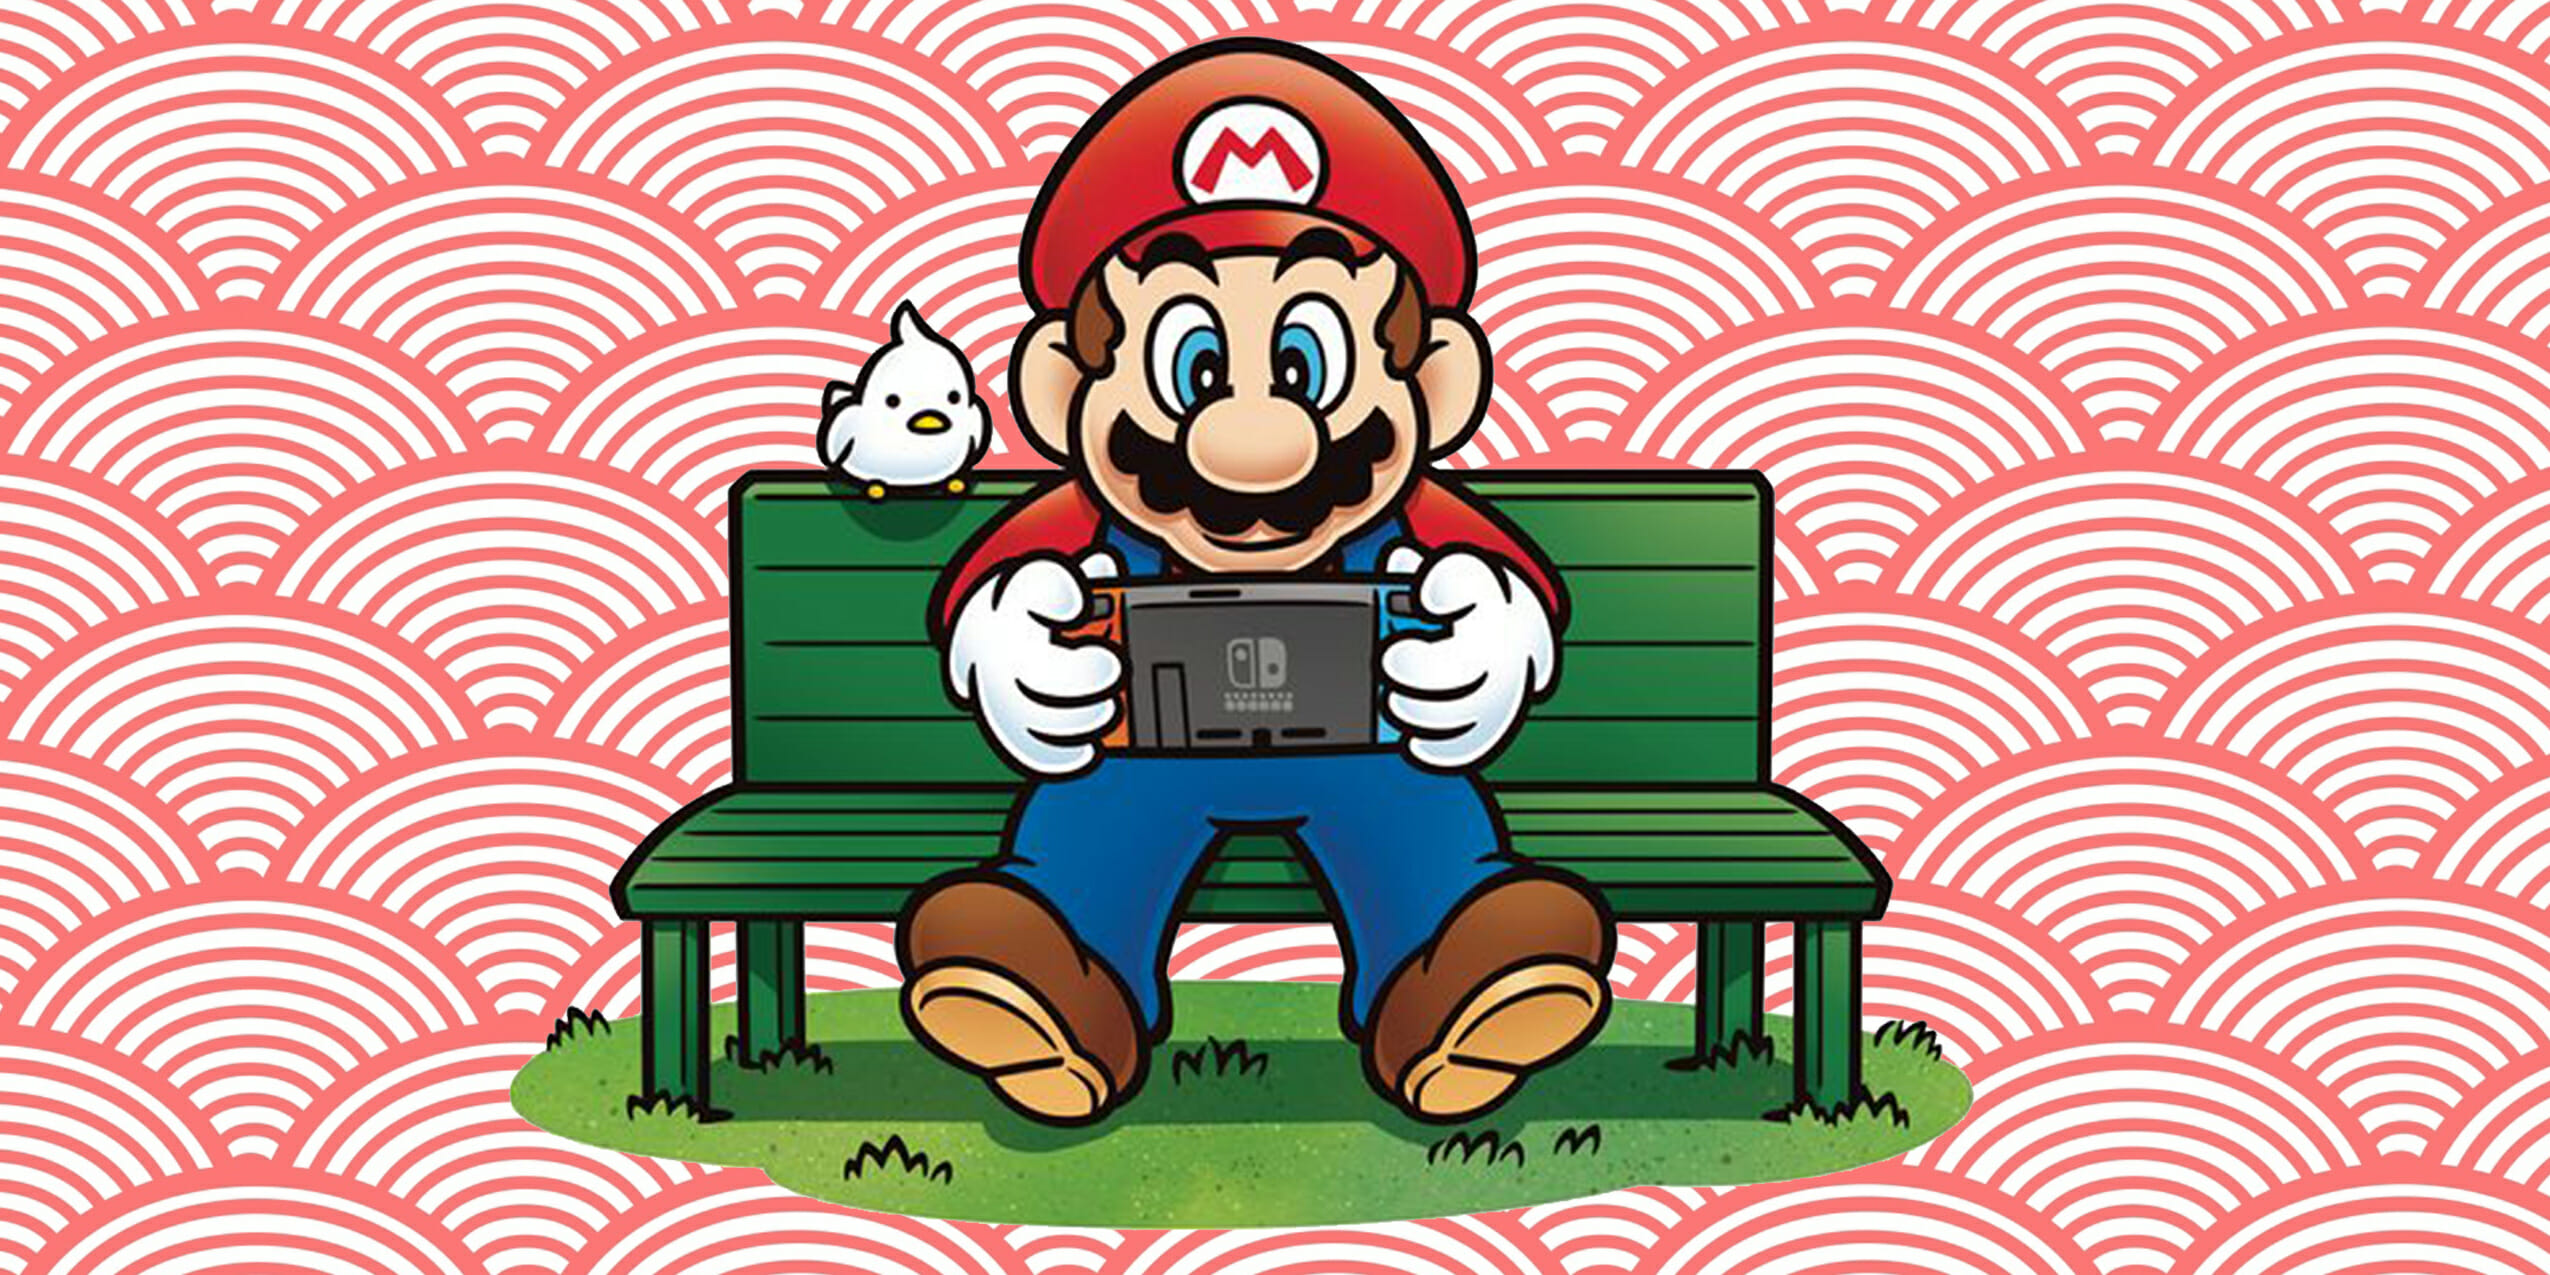 Analyst provides an interesting explanation as to why he believes Nintendo is working on a Switch revamp